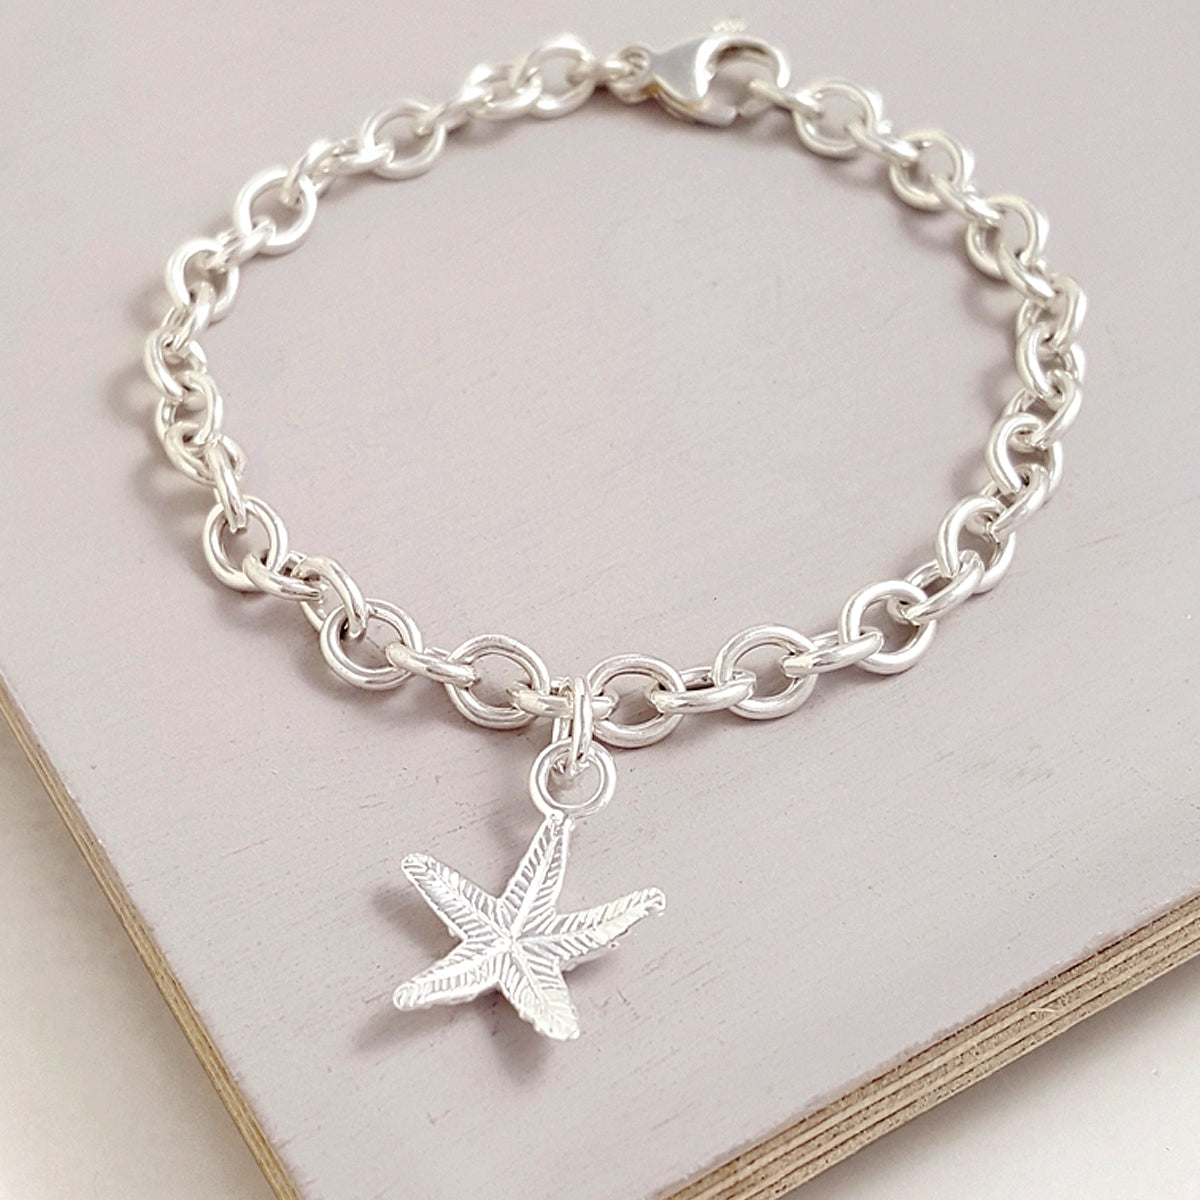 Starfish Silver Charm for Bracelet from Scarlett Jewellery